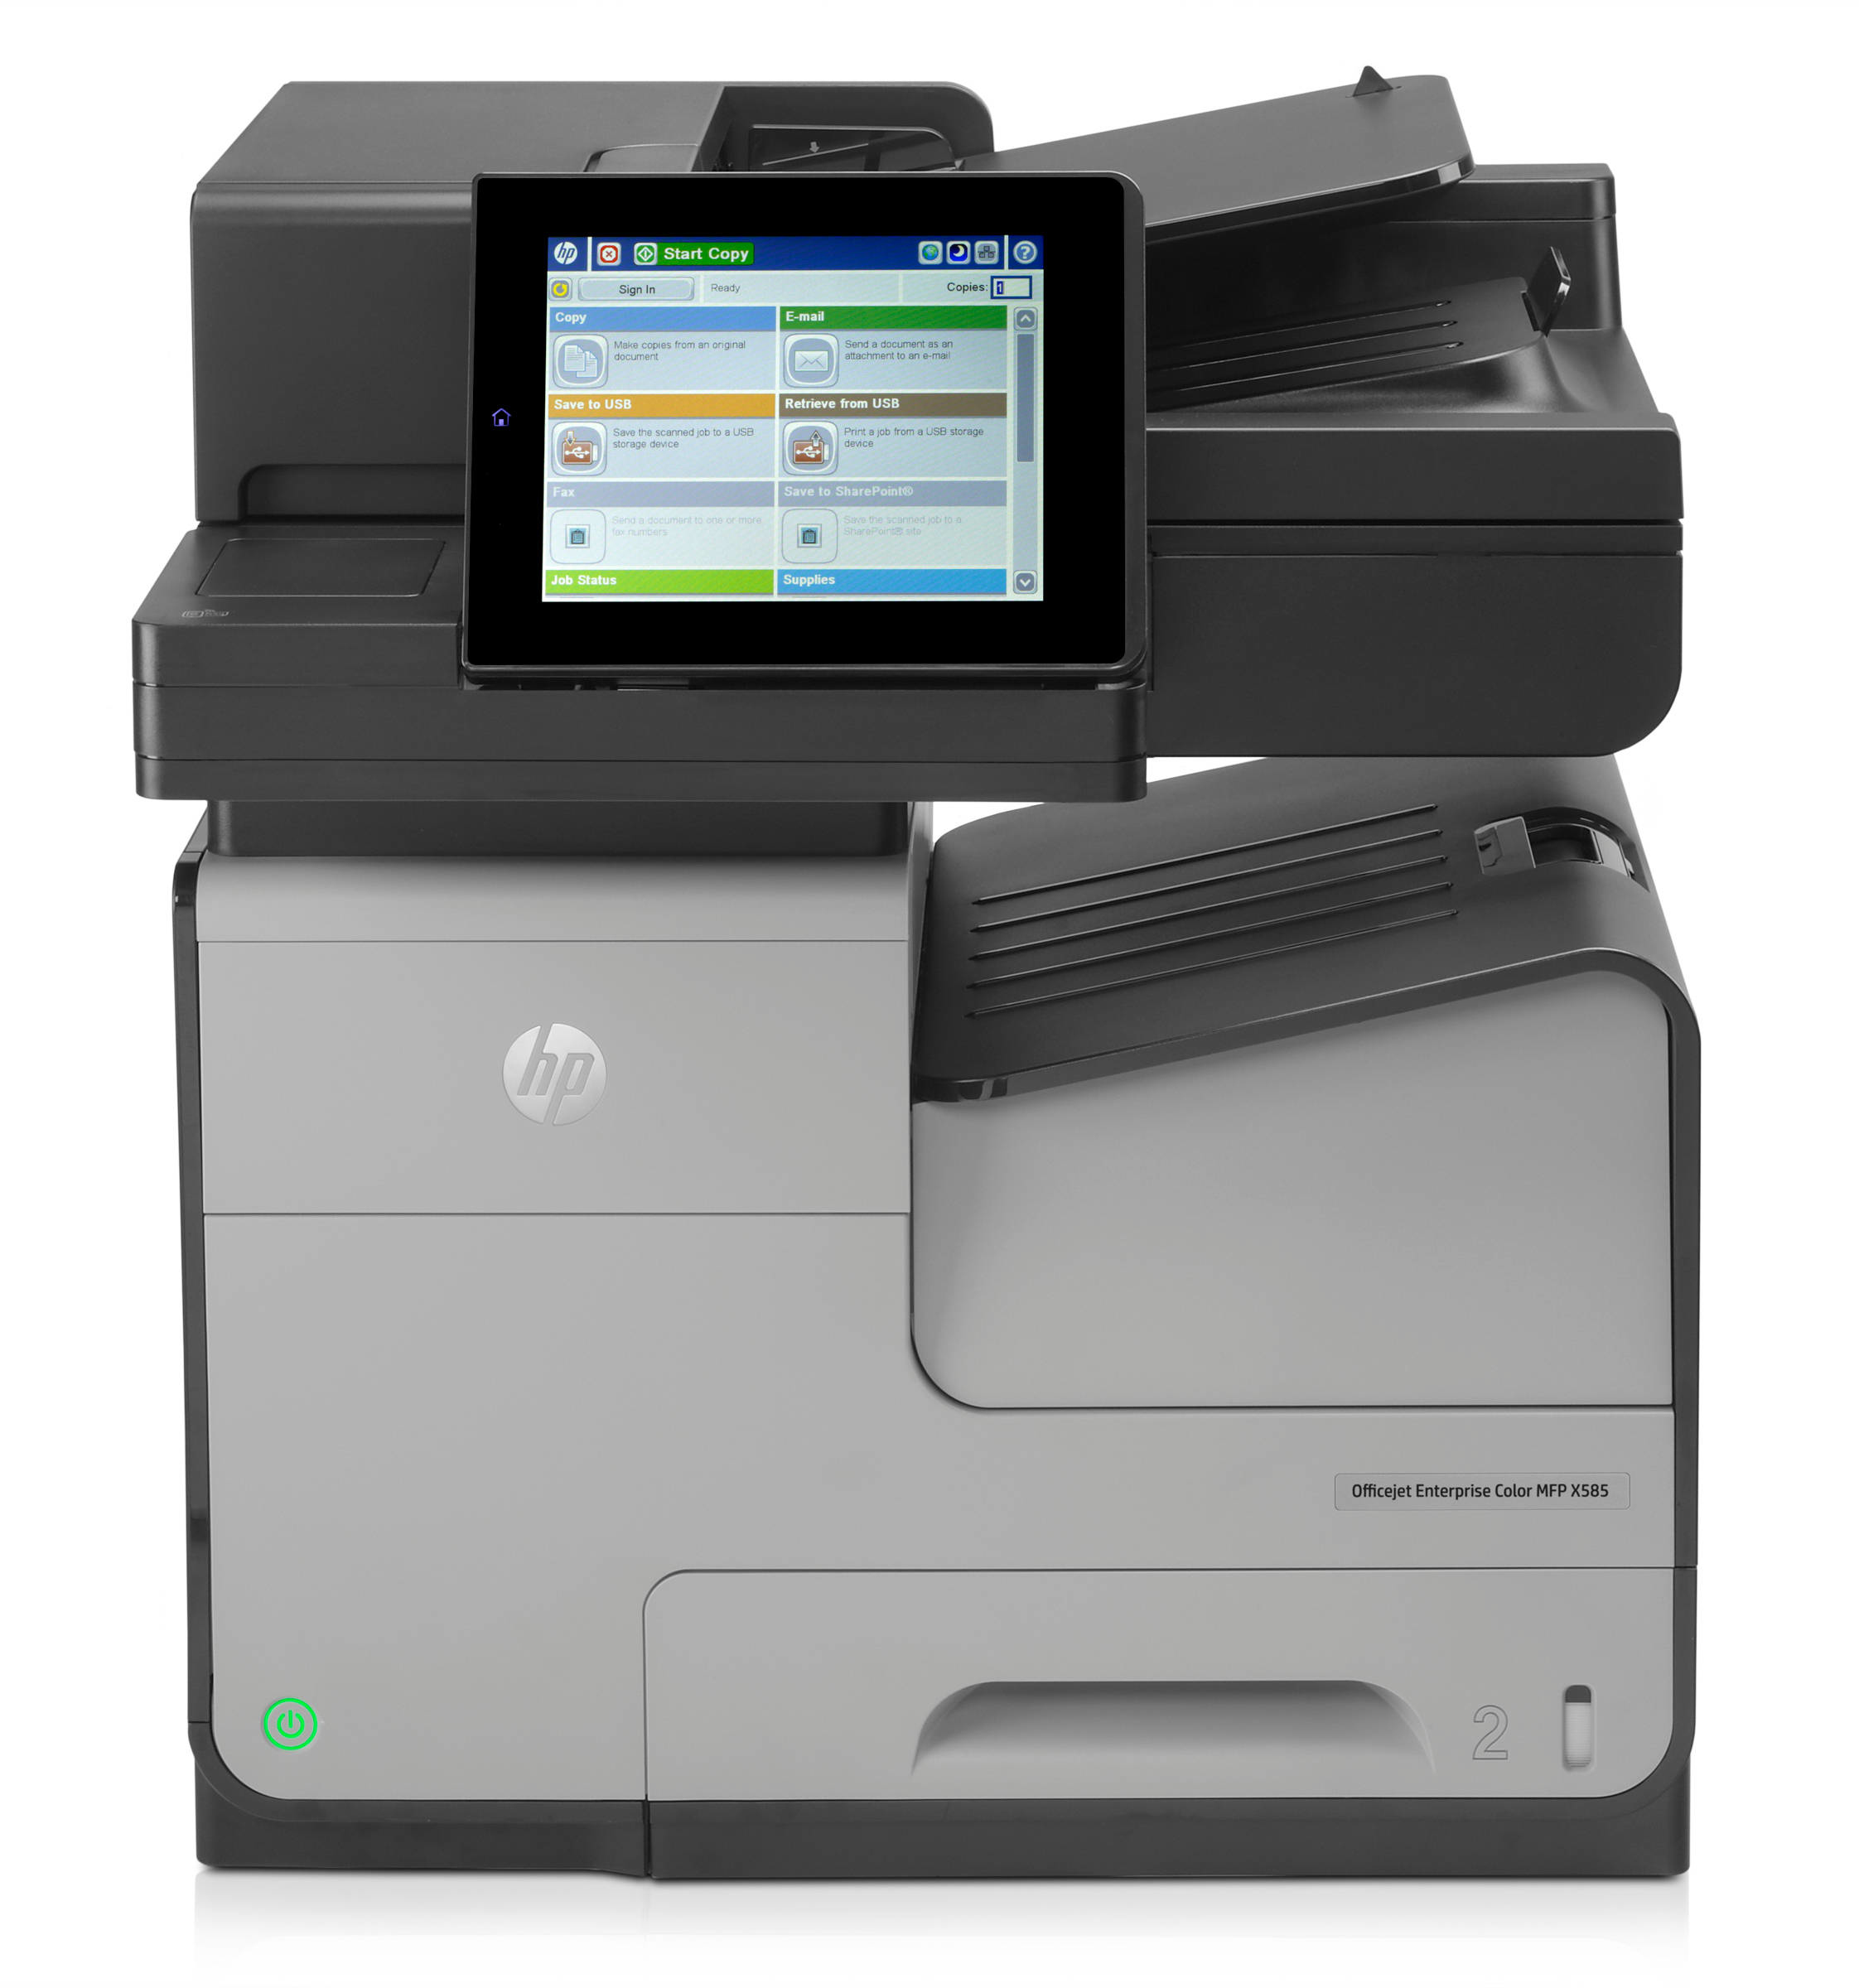 B5L05A HP OfficeJet Enterprise Colour X585F X585 Multifunction InkJet Printer - Refurbished with 3 months RTB warranty